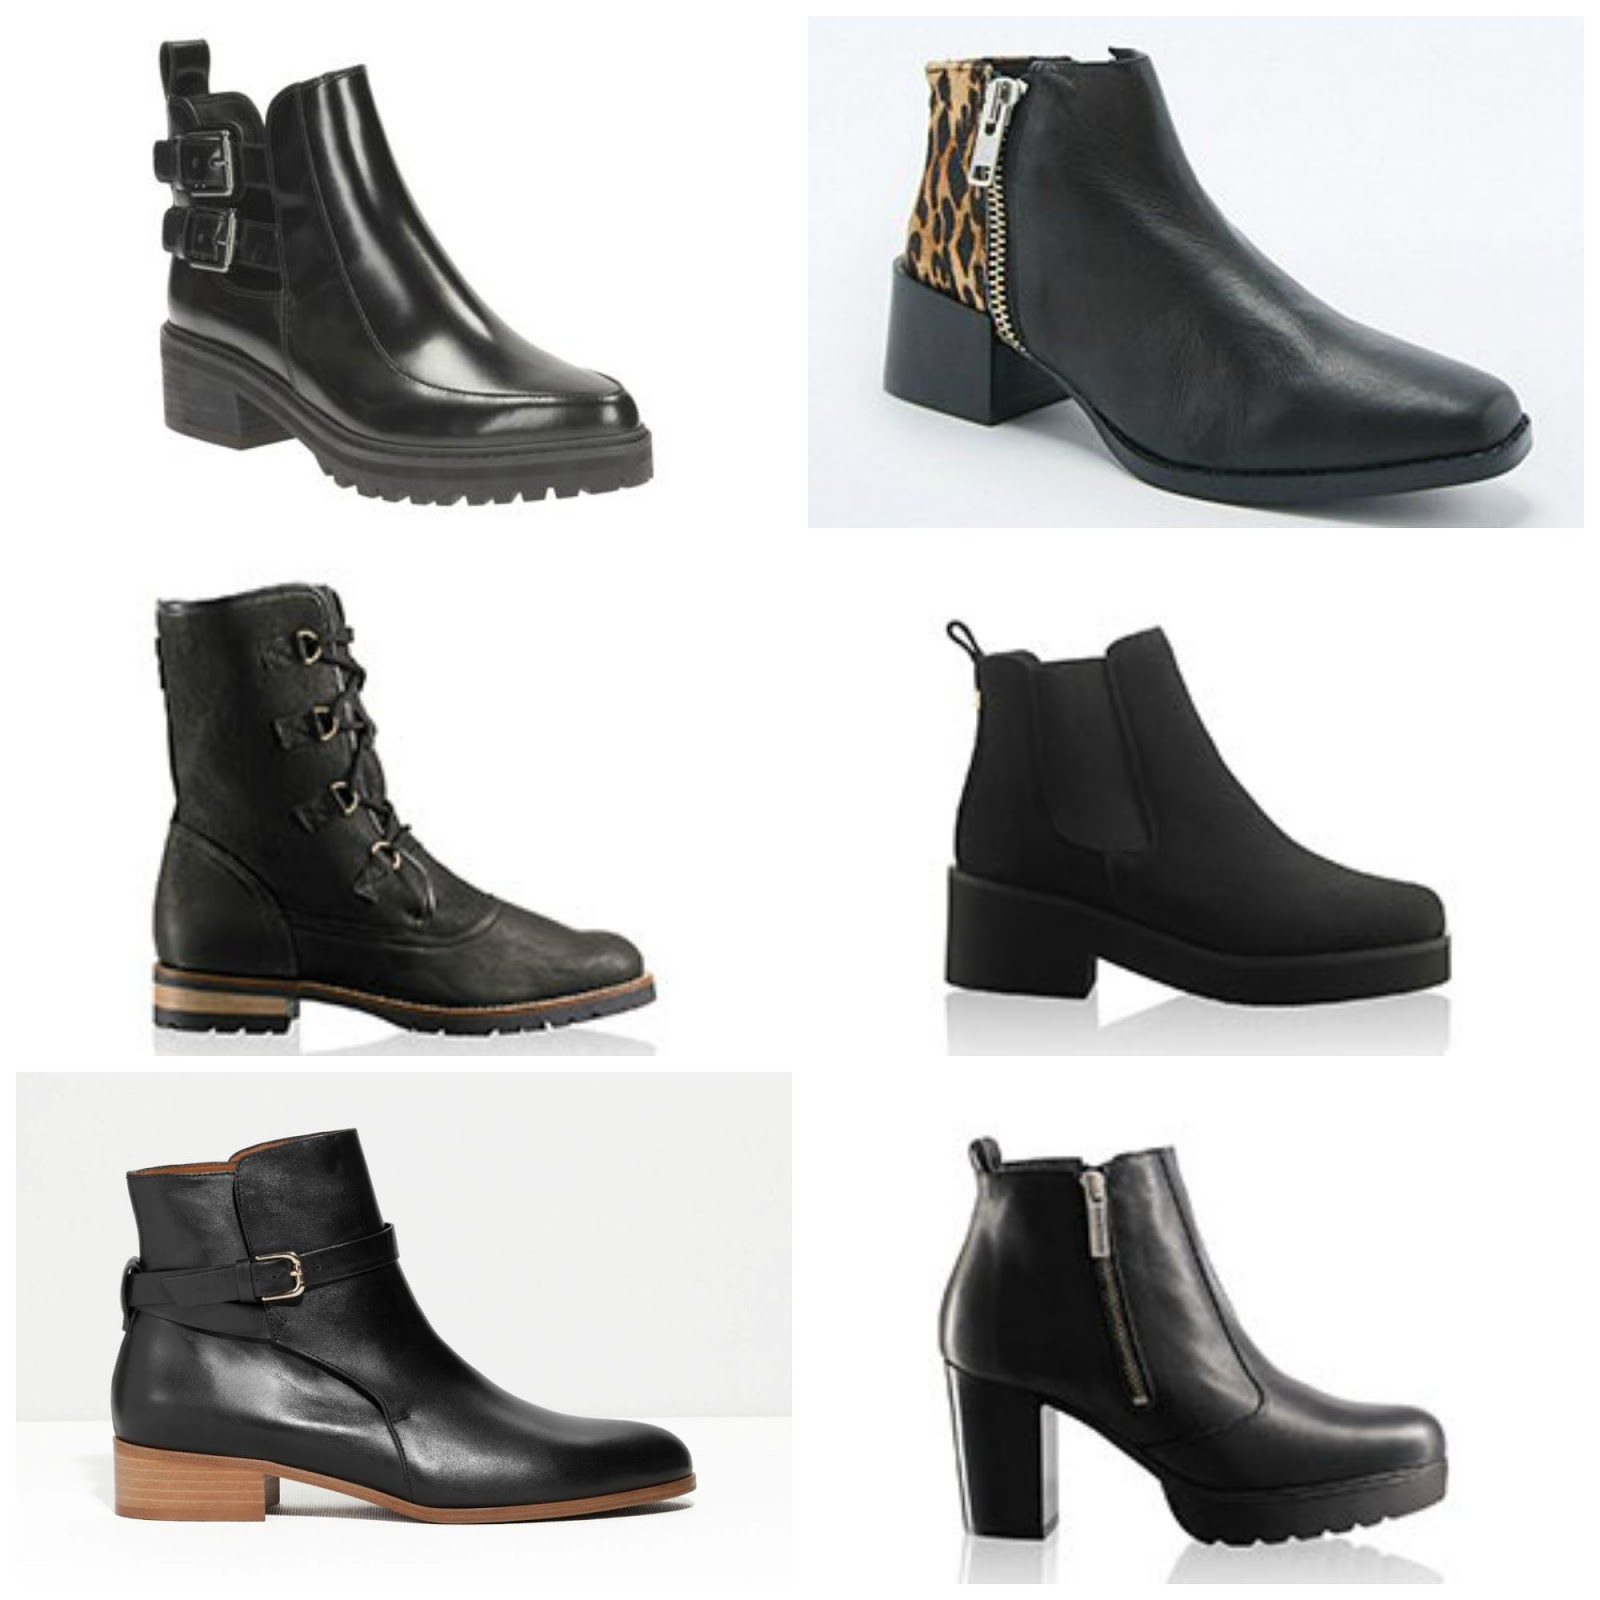 FASHION | THE LITTLE BLACK BOOT | Carrie Jackson